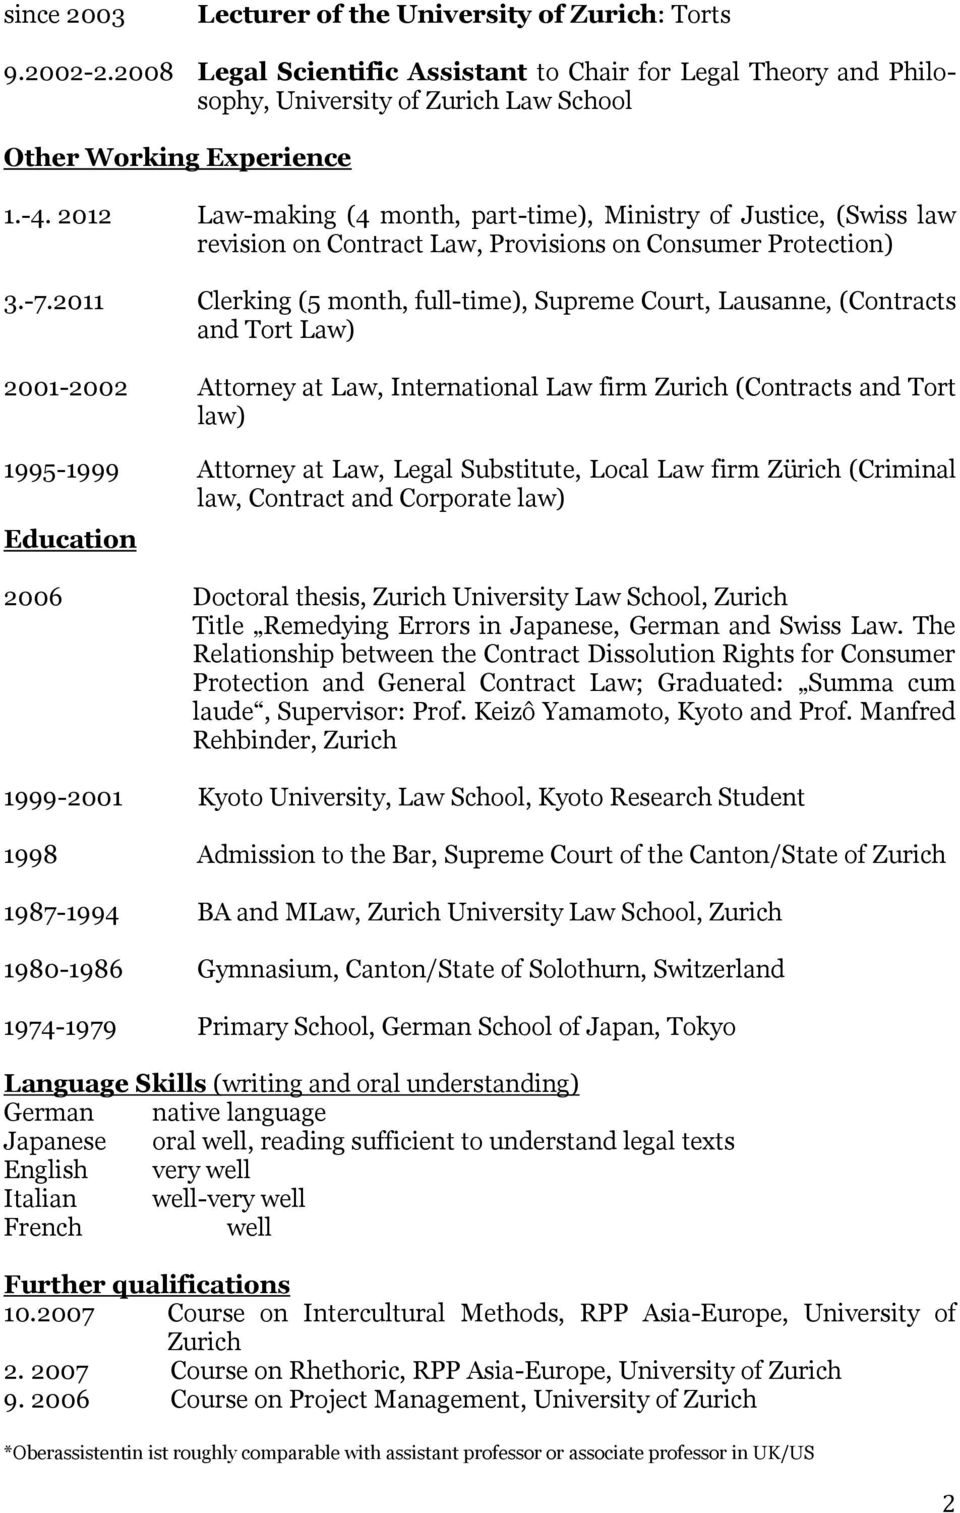 2011 Clerking (5 month, full-time), Supreme Court, Lausanne, (Contracts and Tort Law) 2001-2002 Attorney at Law, International Law firm Zurich (Contracts and Tort law) 1995-1999 Attorney at Law,